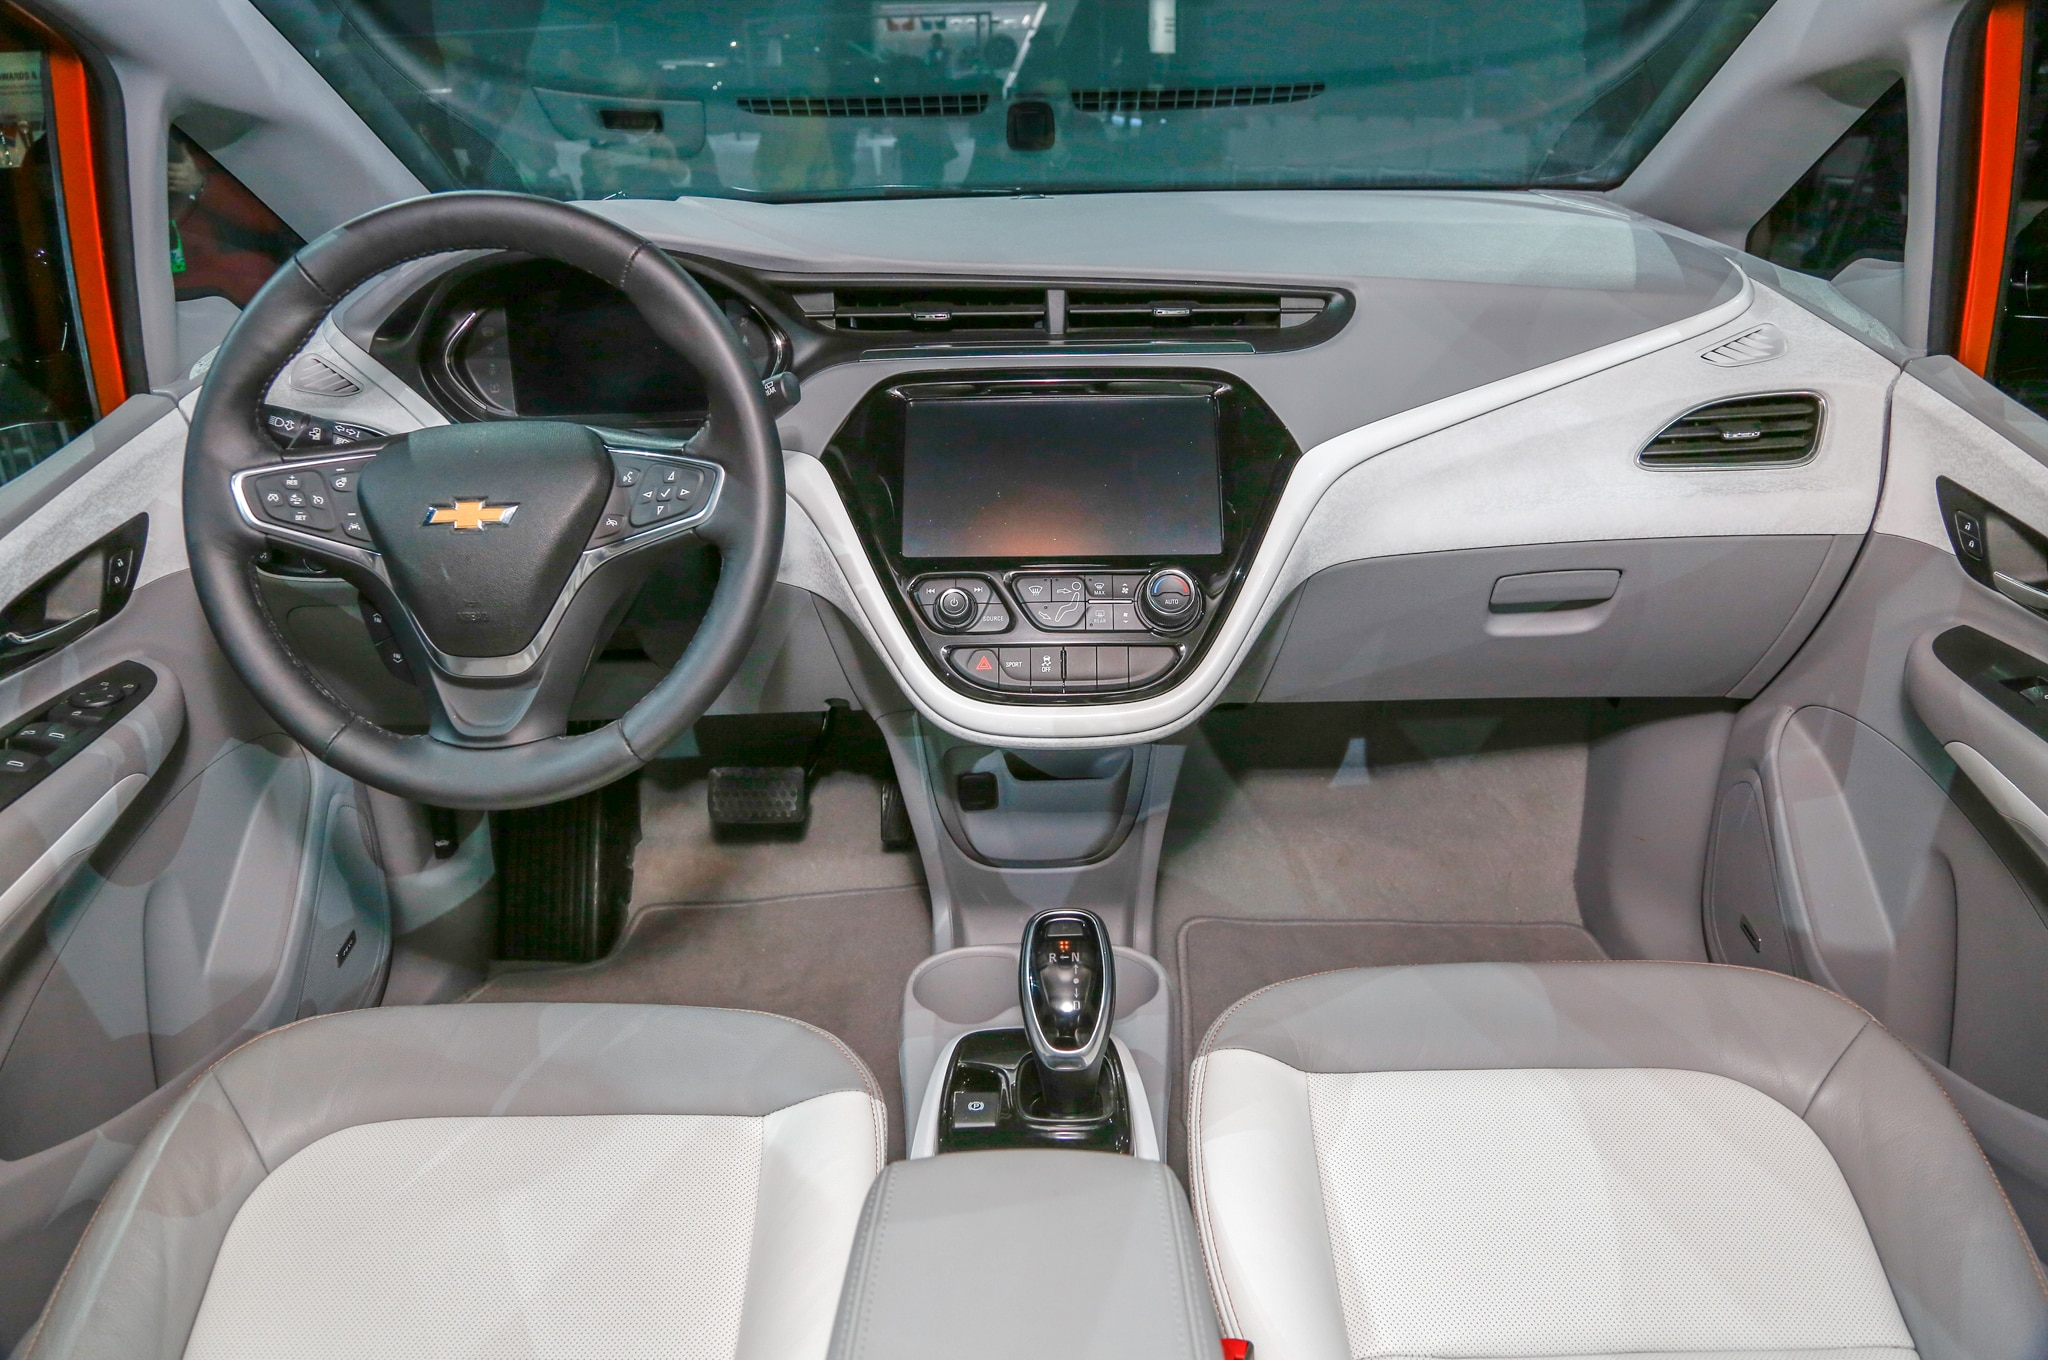 2017 Chevrolet Bolt EV Interior1